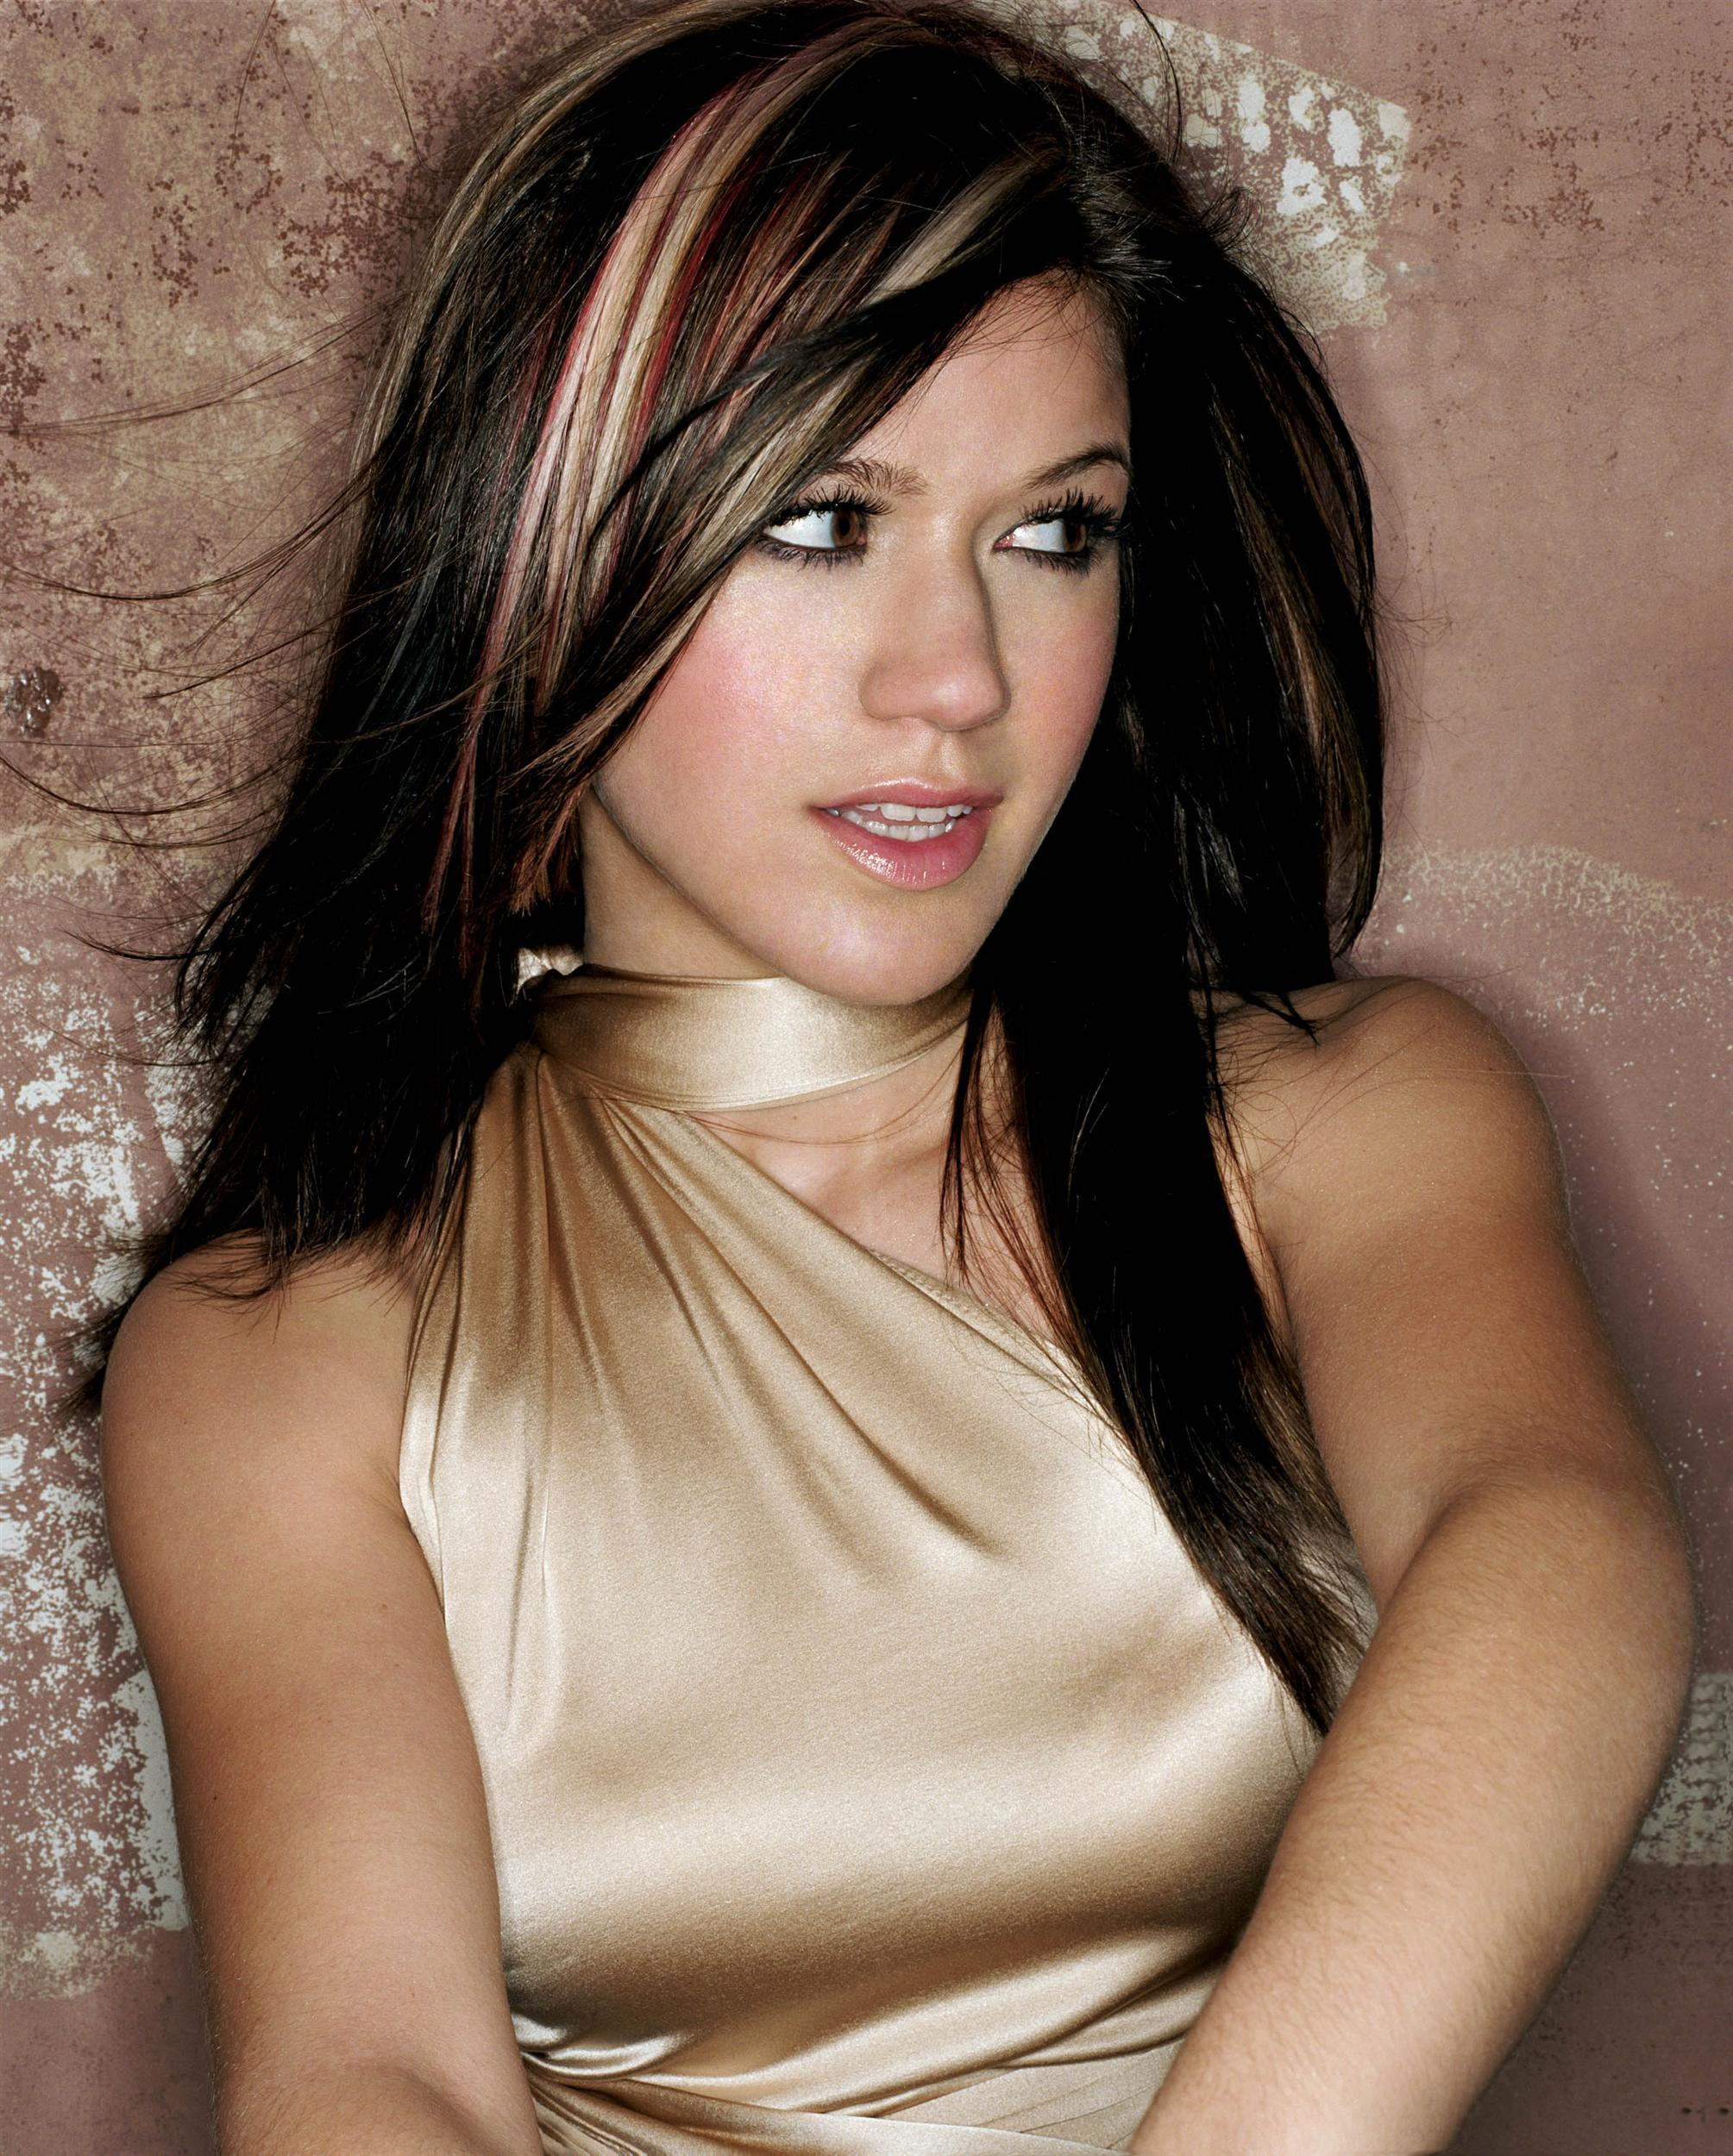 Kelly - Kelly Clarkson Photo (1418792) - Fanpop